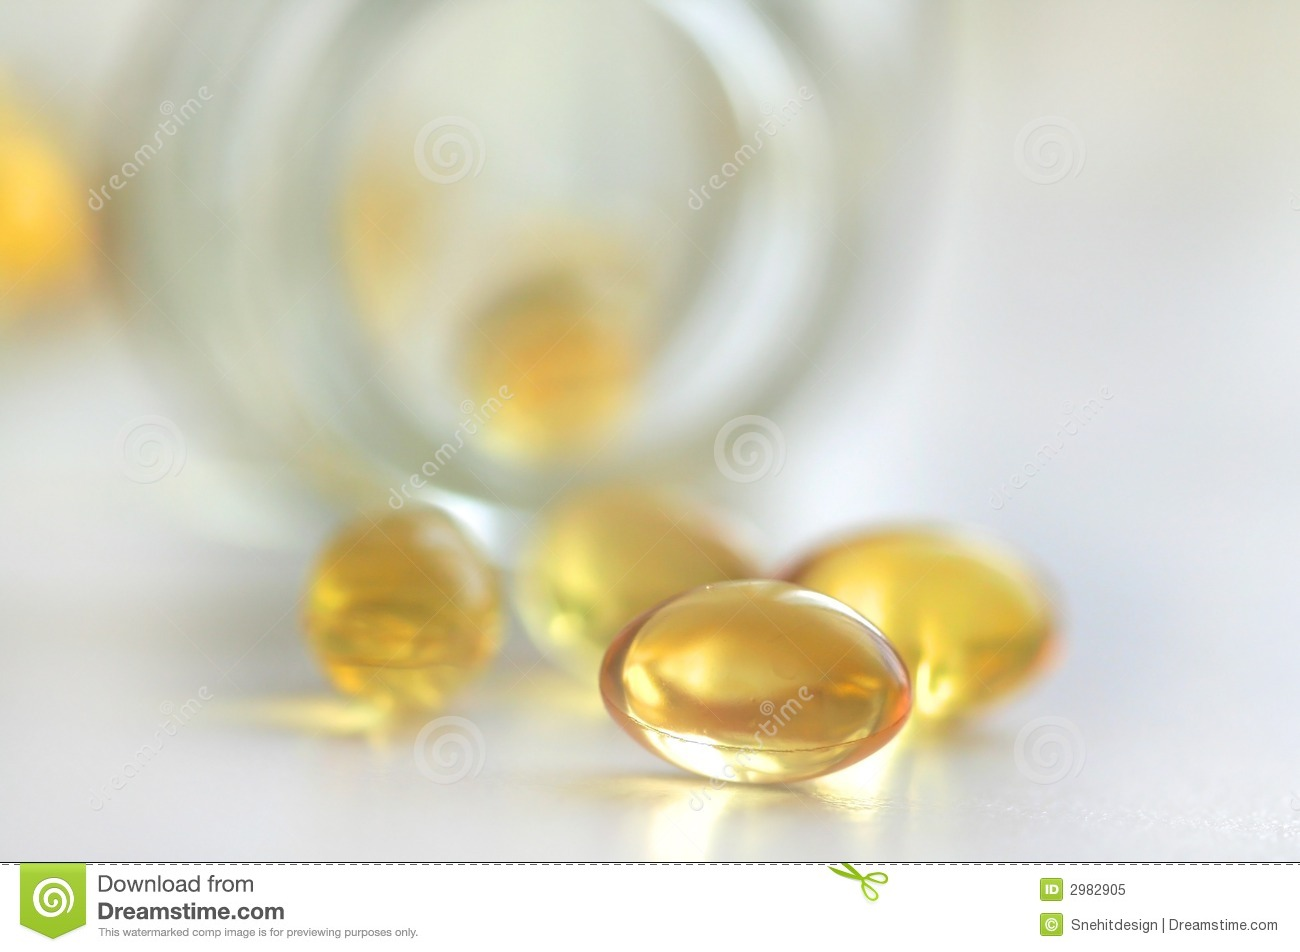 Fish oil pills royalty free stock photo image 2982905 for What is fish oil pills used for